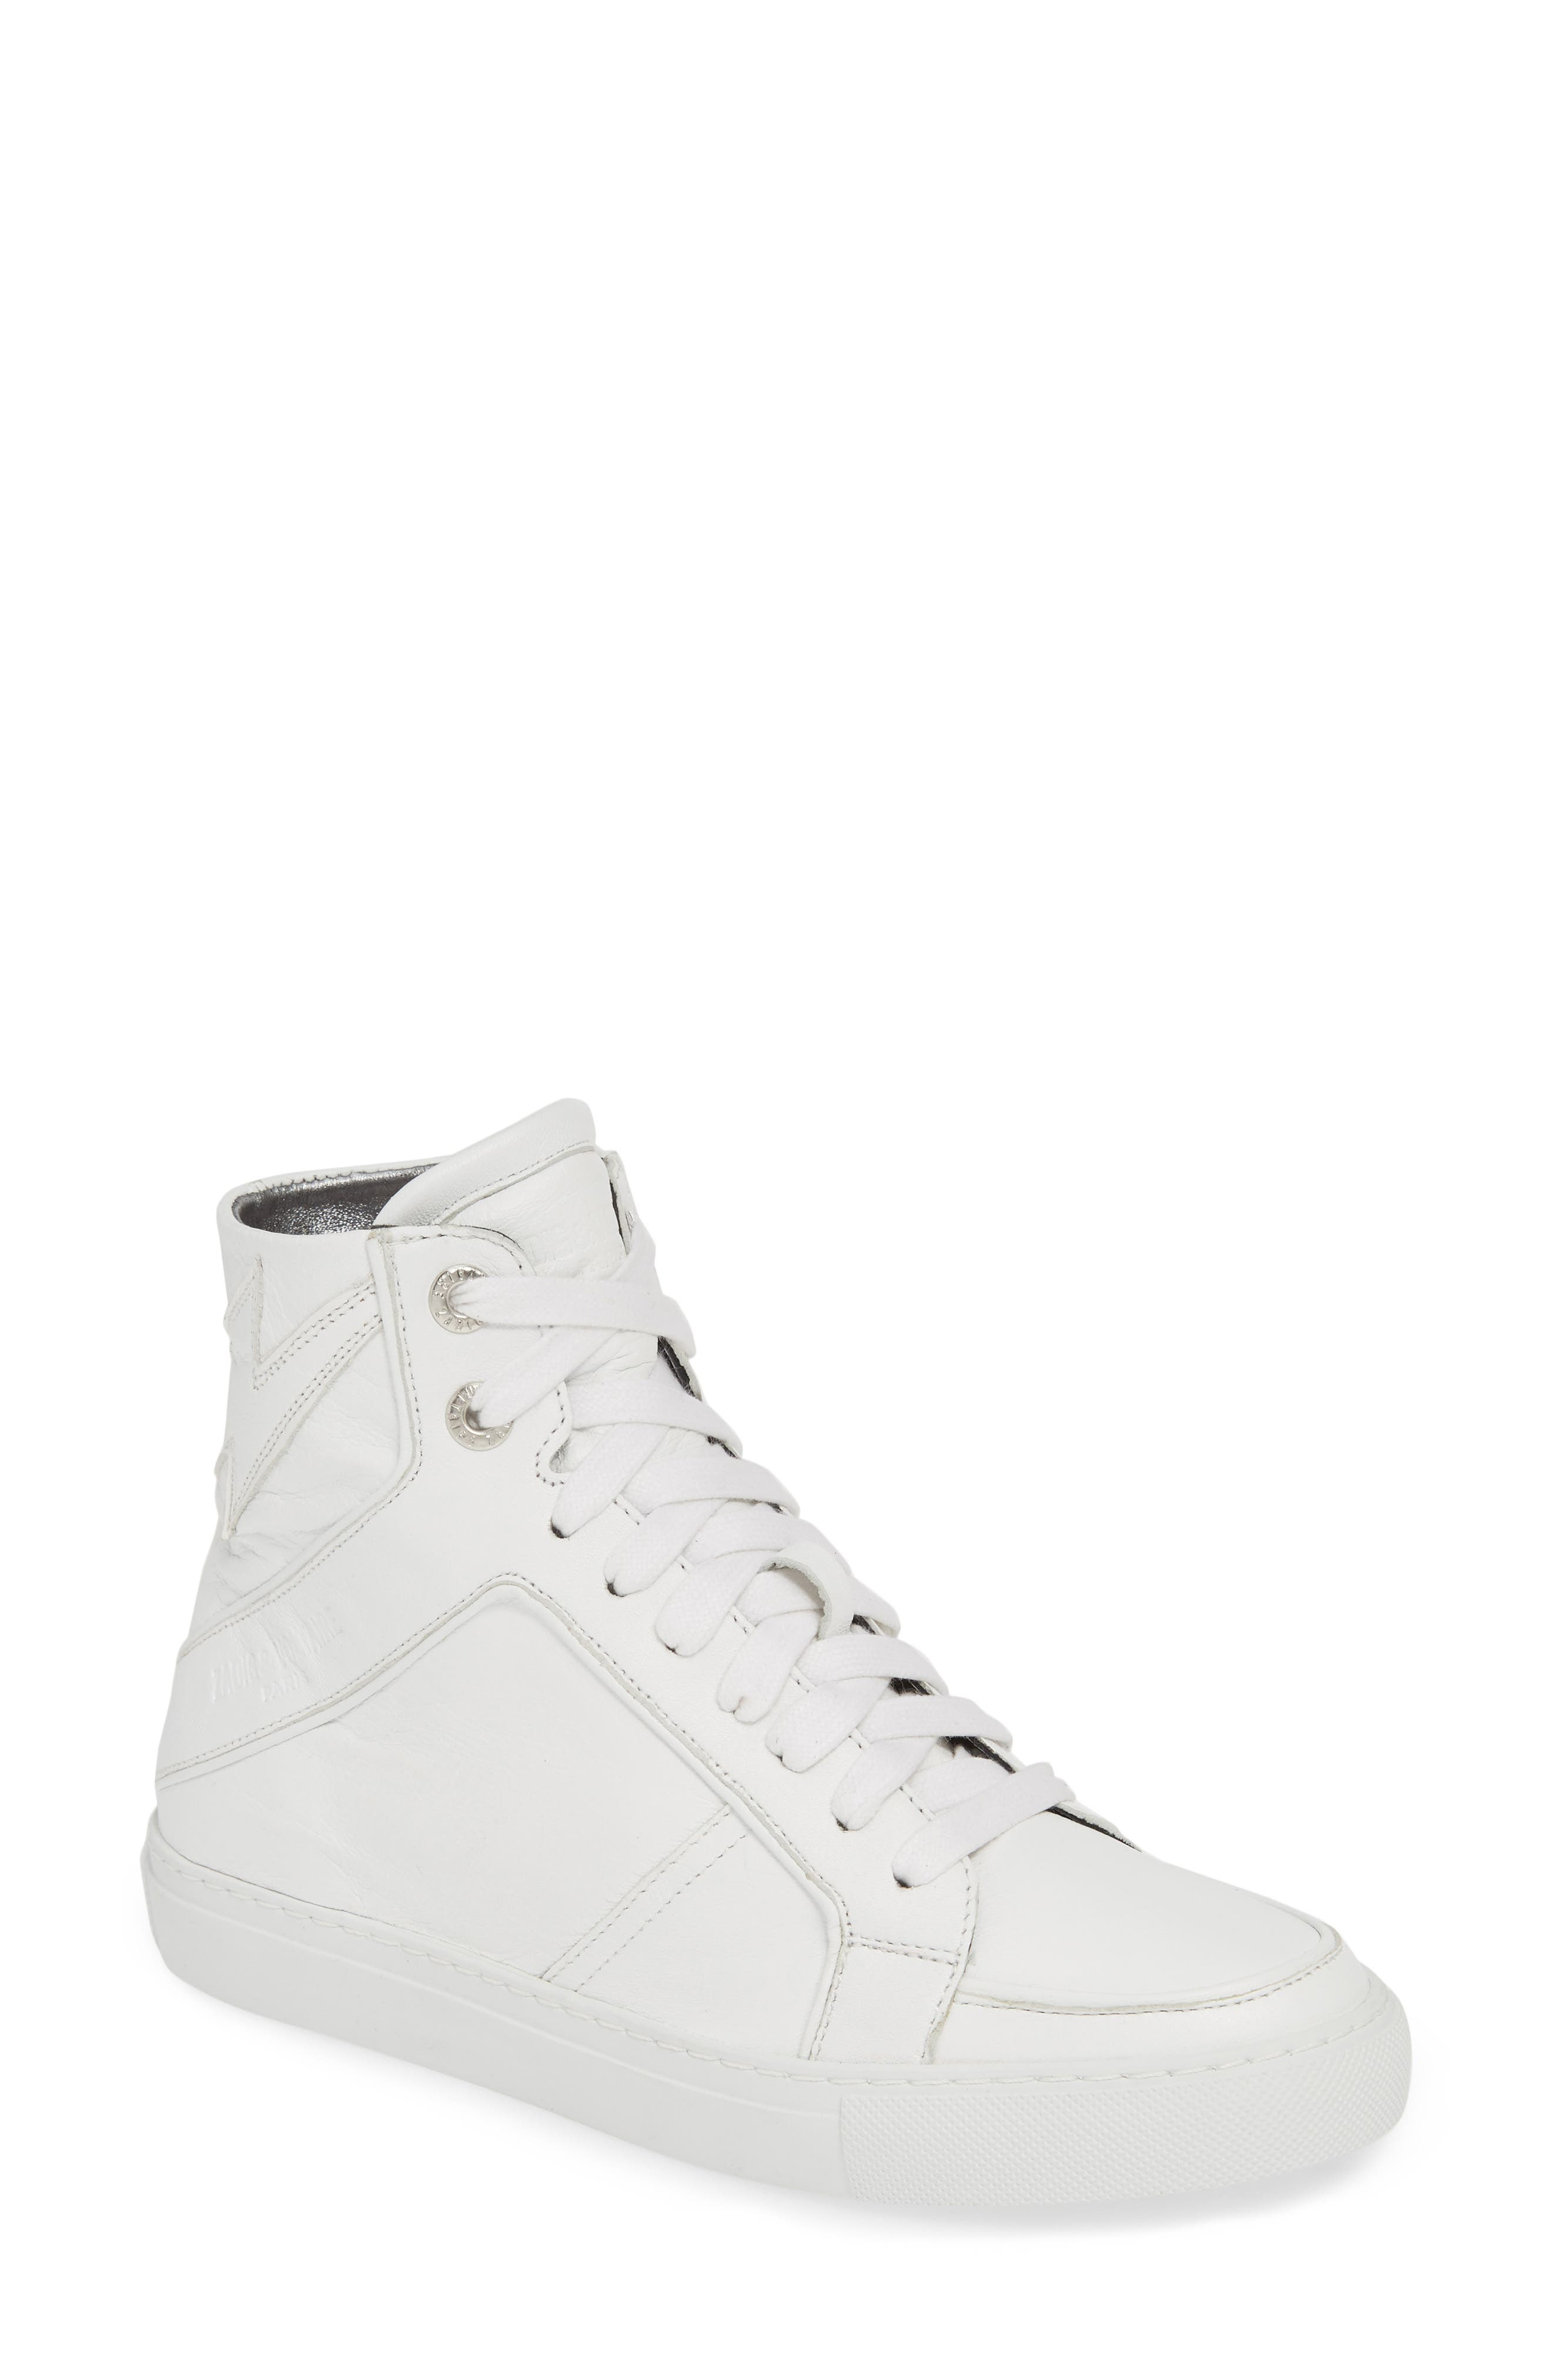 Flash High Top Sneaker by Zadig & Voltaire